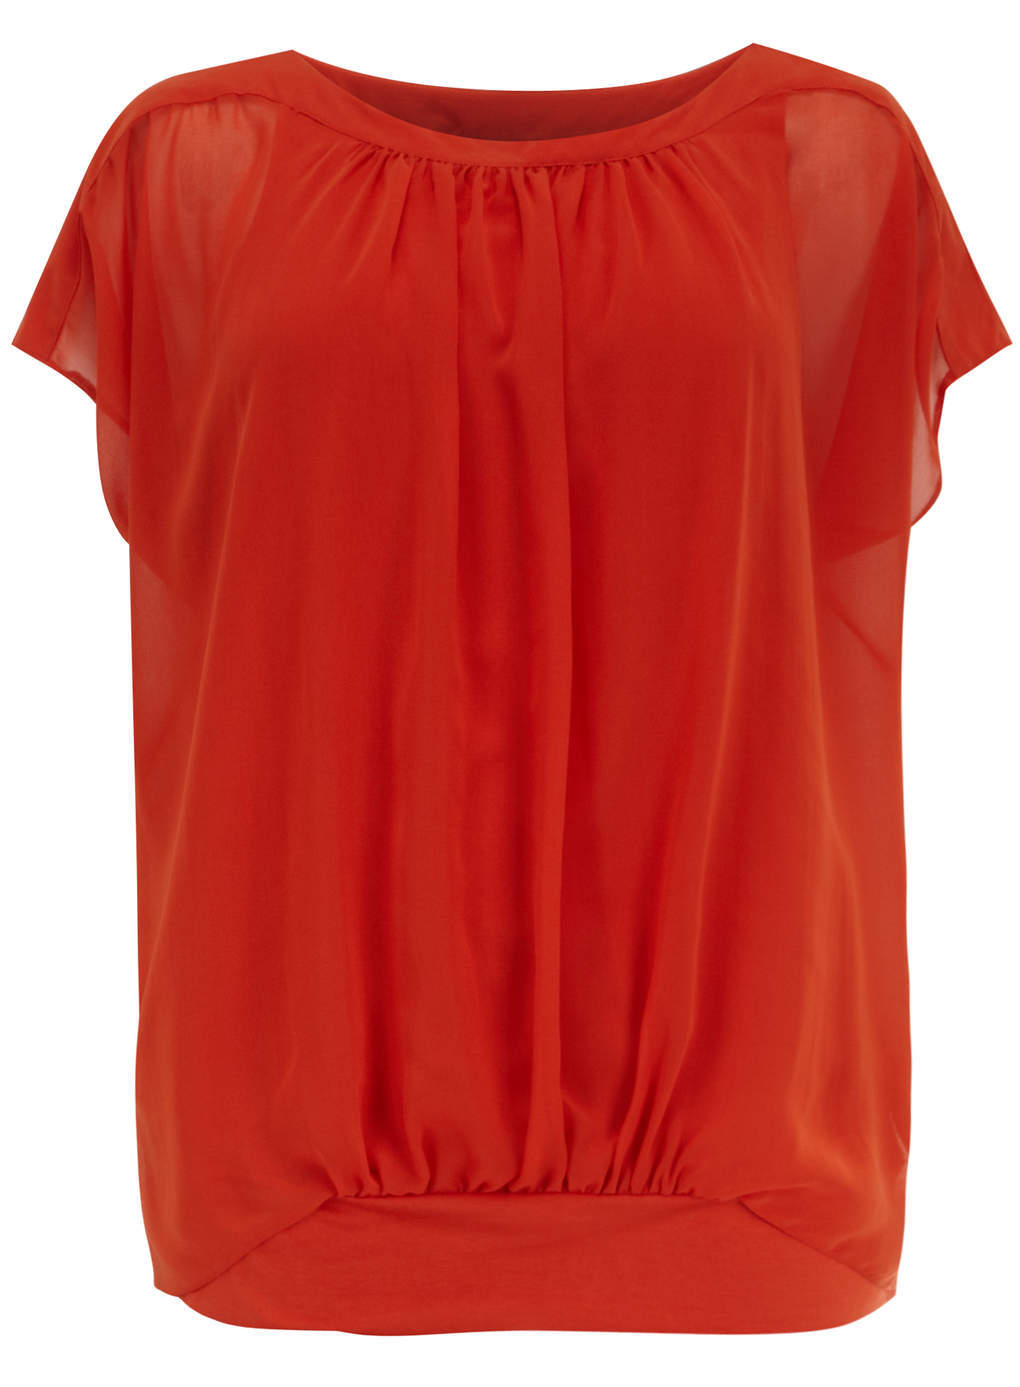 Live Unlimited Orange Trim Layer Top - neckline: slash/boat neckline; sleeve style: angel/waterfall; pattern: plain; style: blouson; predominant colour: bright orange; occasions: casual, evening, creative work; length: standard; fibres: polyester/polyamide - 100%; fit: loose; sleeve length: short sleeve; texture group: sheer fabrics/chiffon/organza etc.; pattern type: fabric; season: s/s 2014